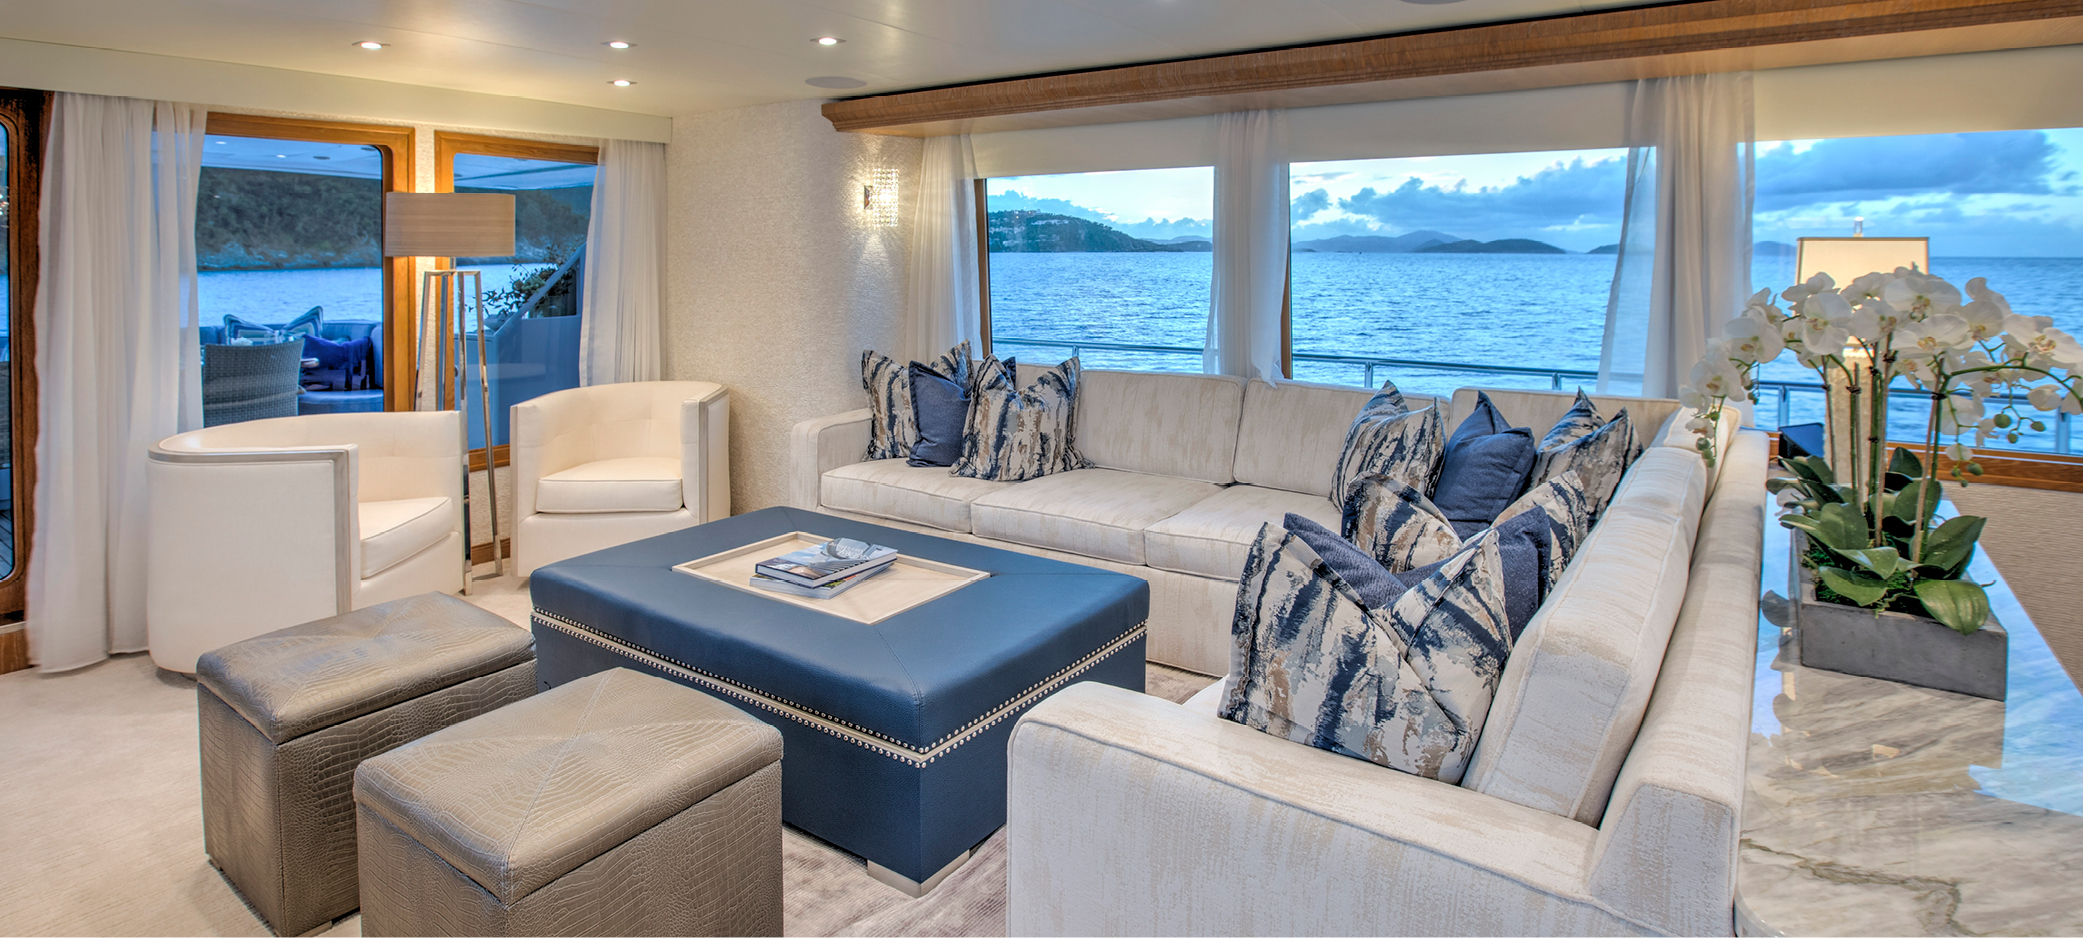 Yacht refit for M/Y WINNING HAND featuring custom-made pieces with storage in all salon furniture, coffee table with opening lid that provides access to hidden storage plus ottomans and sectional sofa al including additional storage.